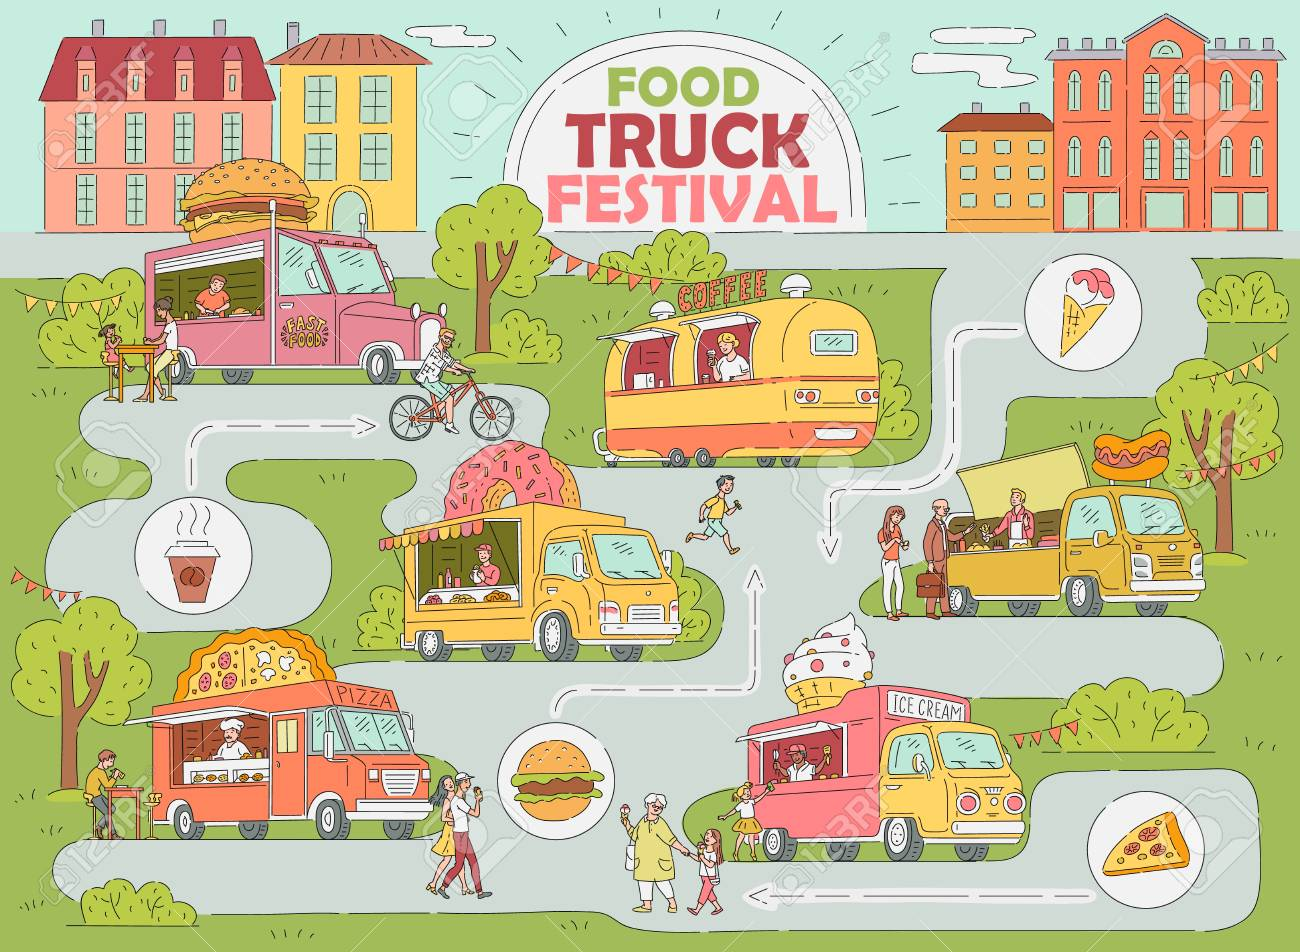 Food truck festival city map - fast food market with ice cream truck, donut and coffee shop, pizza van, hot dog stand with customers, hand drawn cartoon style infographic vector illustration - 123465999